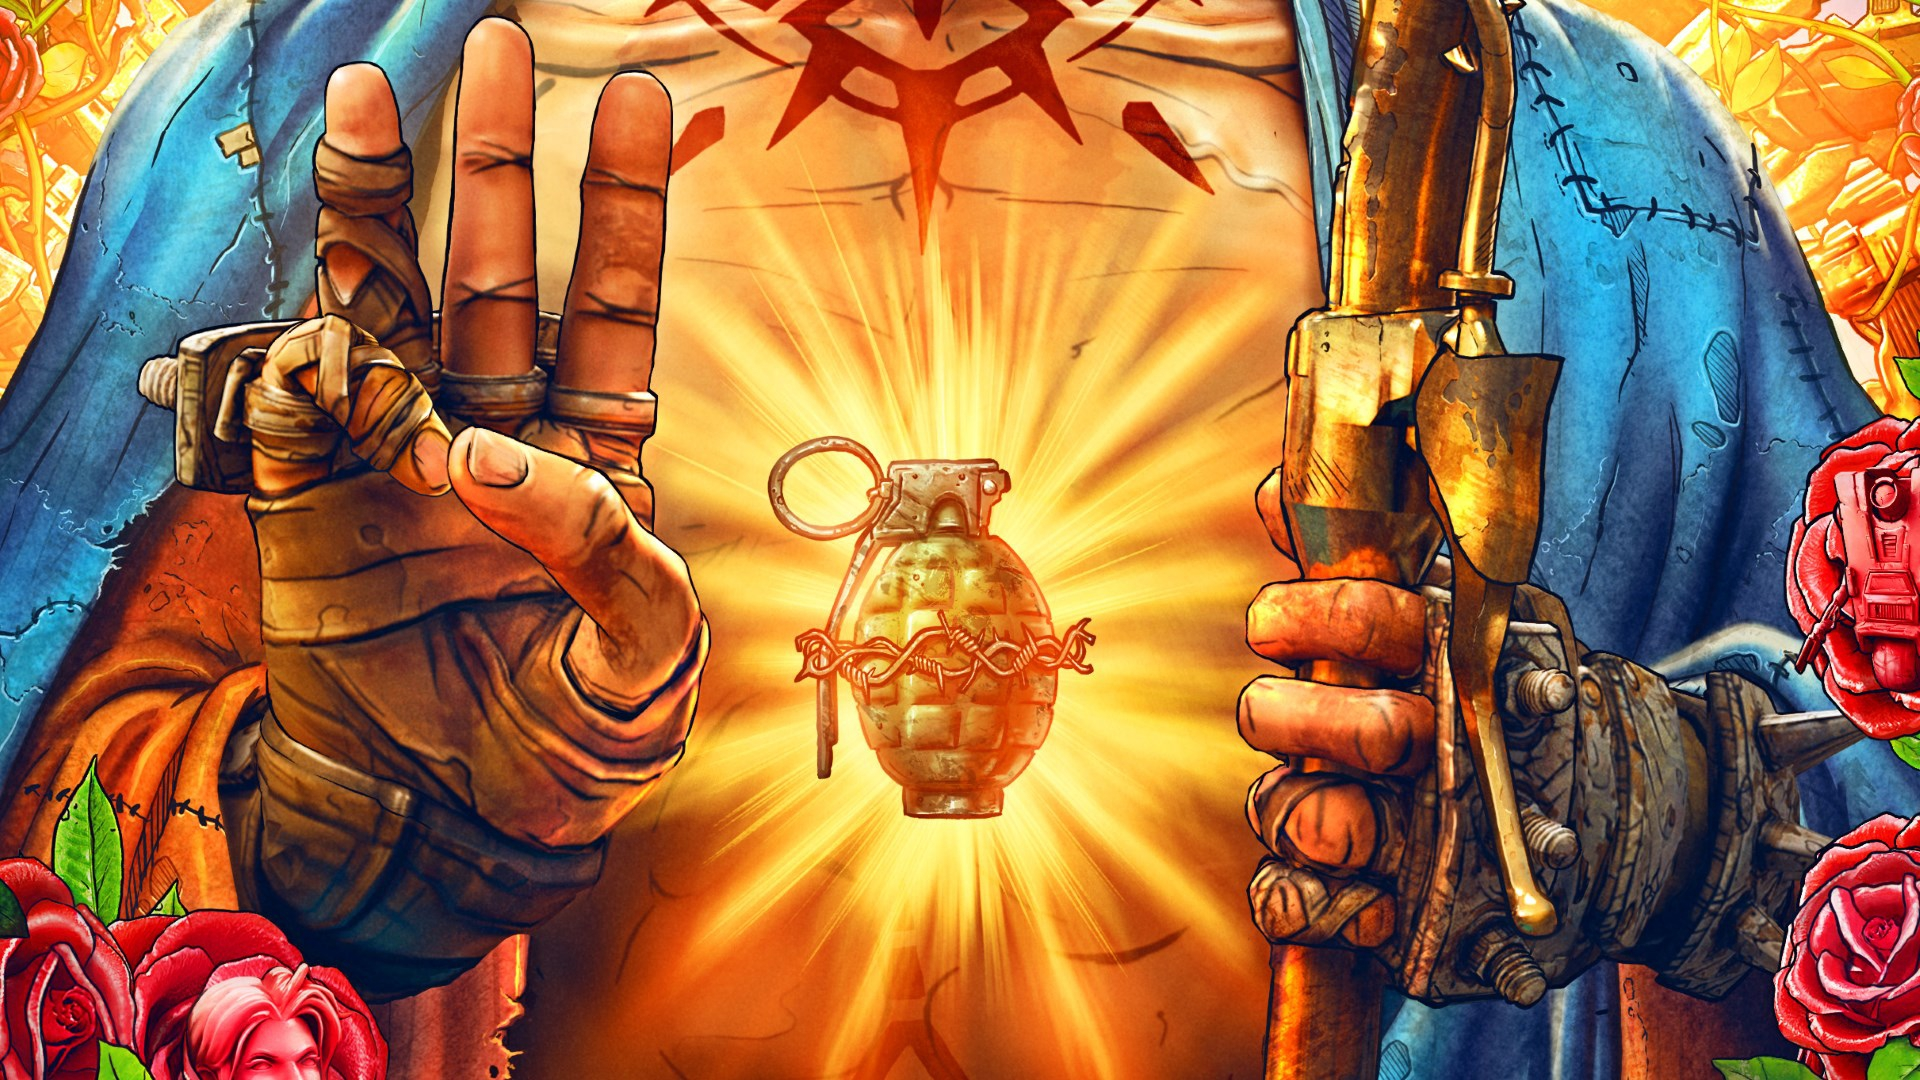 La cover di Borderlands 3 cela un messaggio segreto